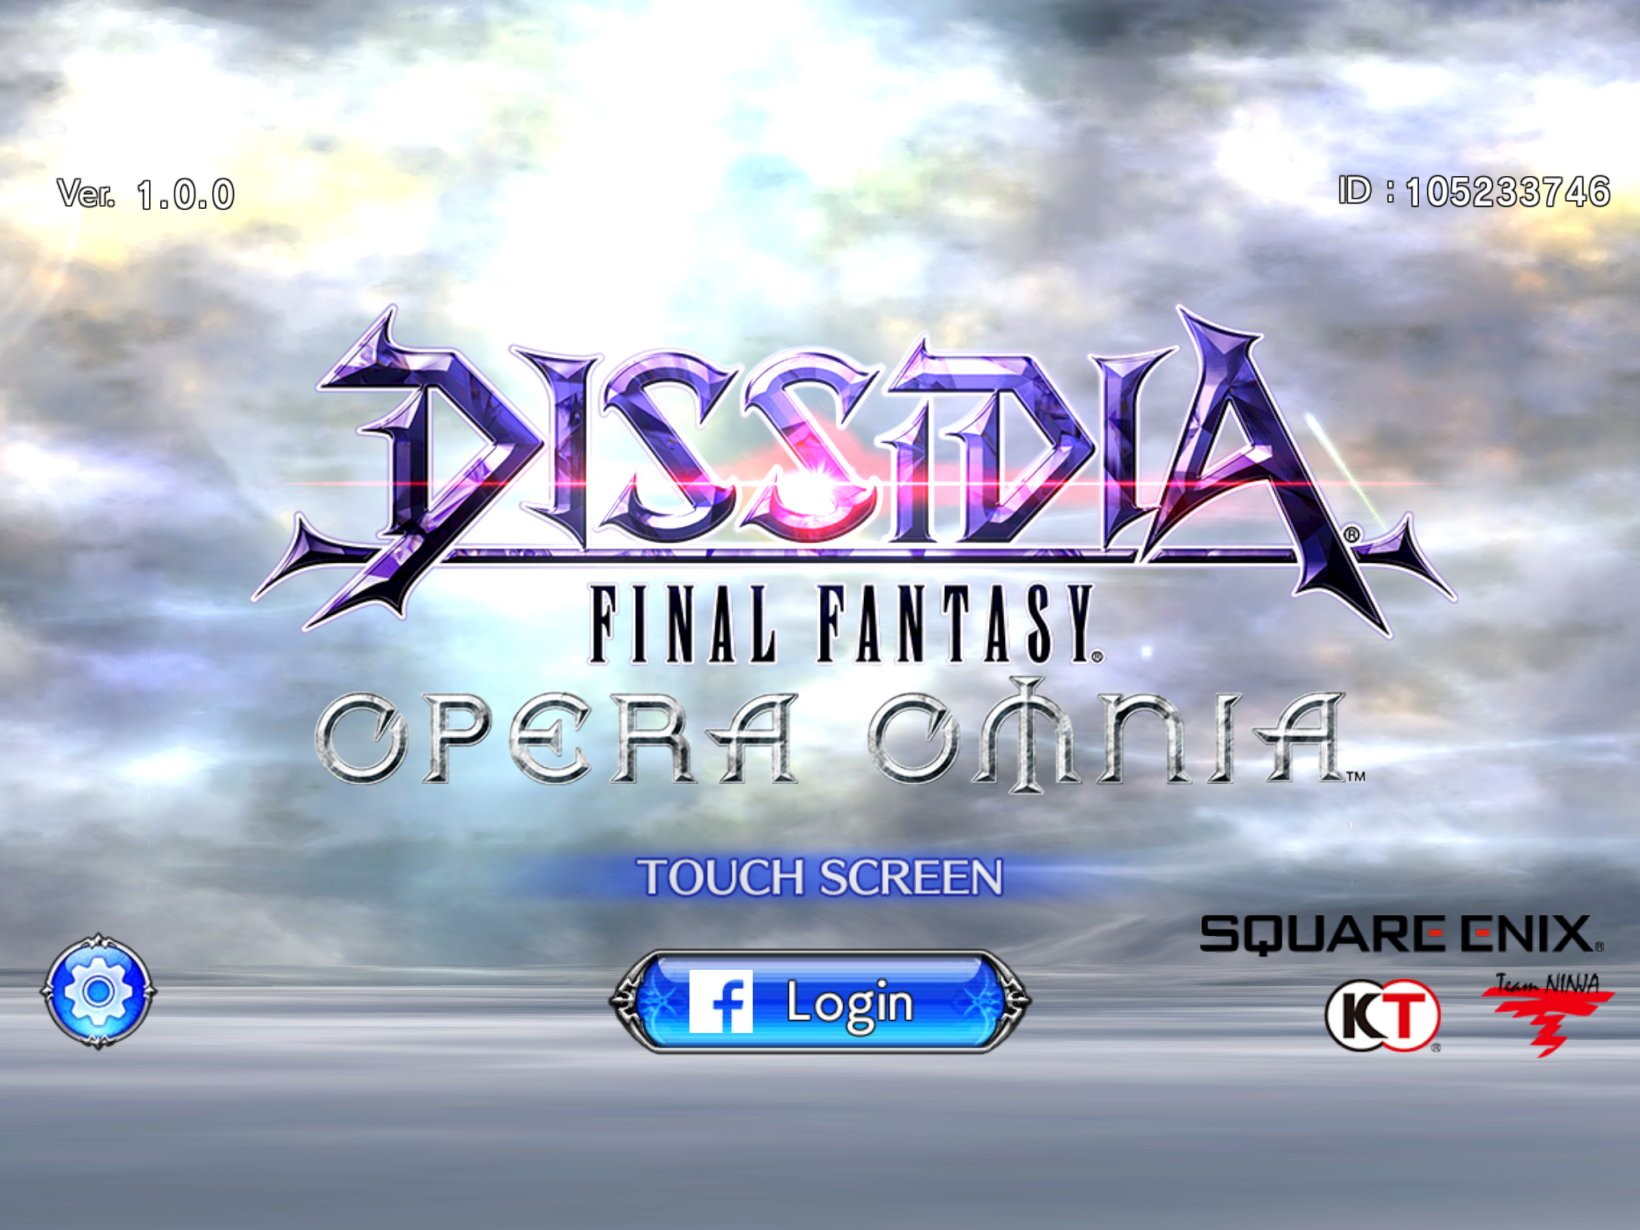 Dissidia Final Fantasy Opera Omnia tips and tricks - Best tips for beating the story